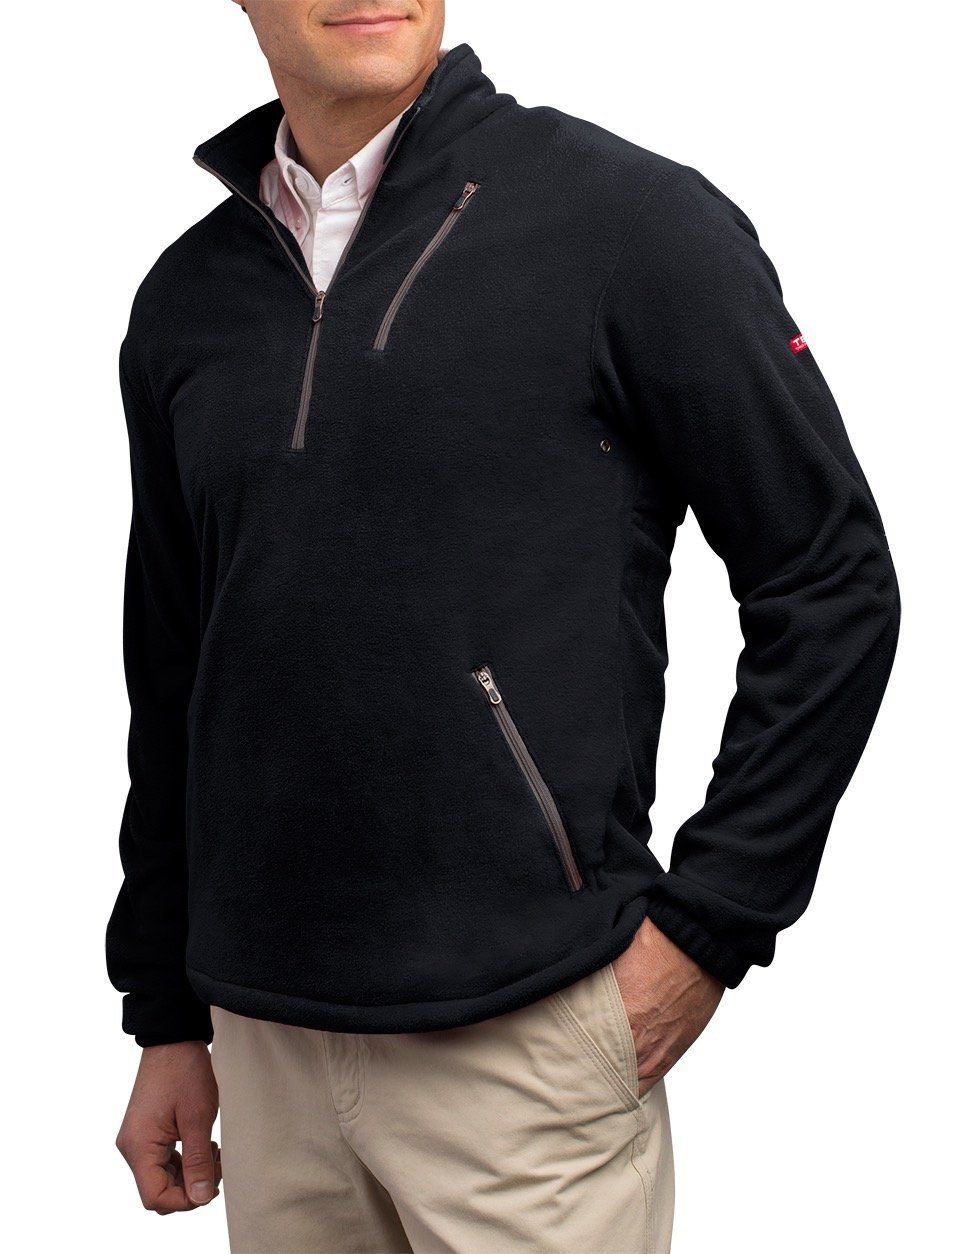 SCOTTeVEST Microfleece Pullover - 8 Pockets – Comfortable Travel Clothing BLK 2XL